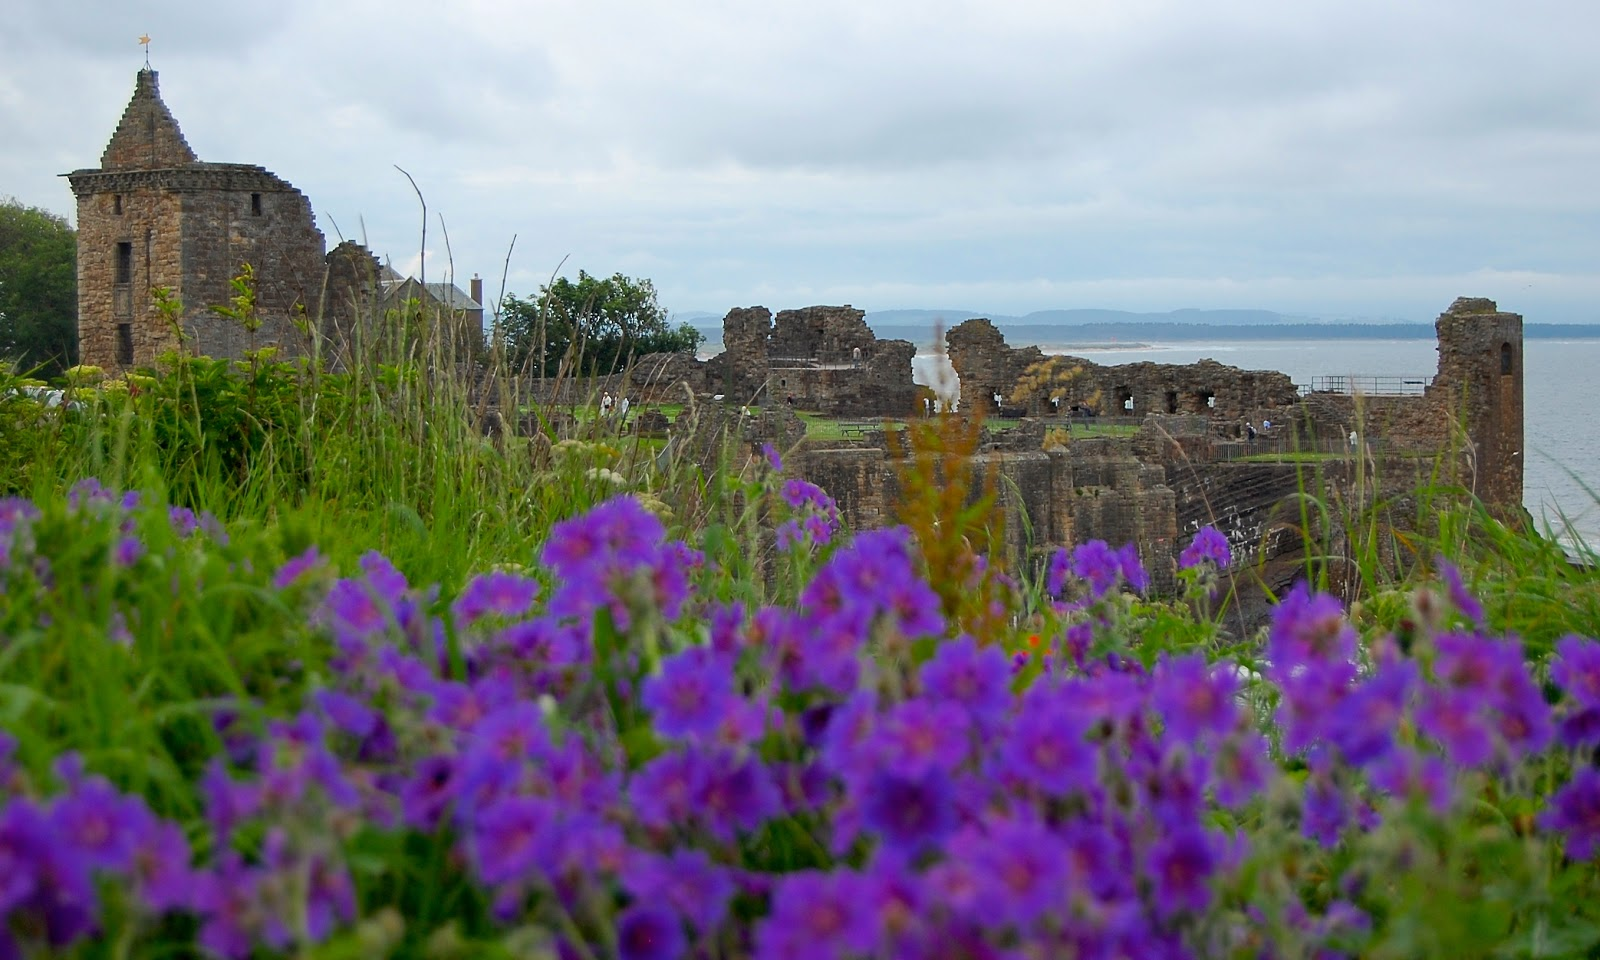 Wildflowers outside St. Andrews Castle, Scotland